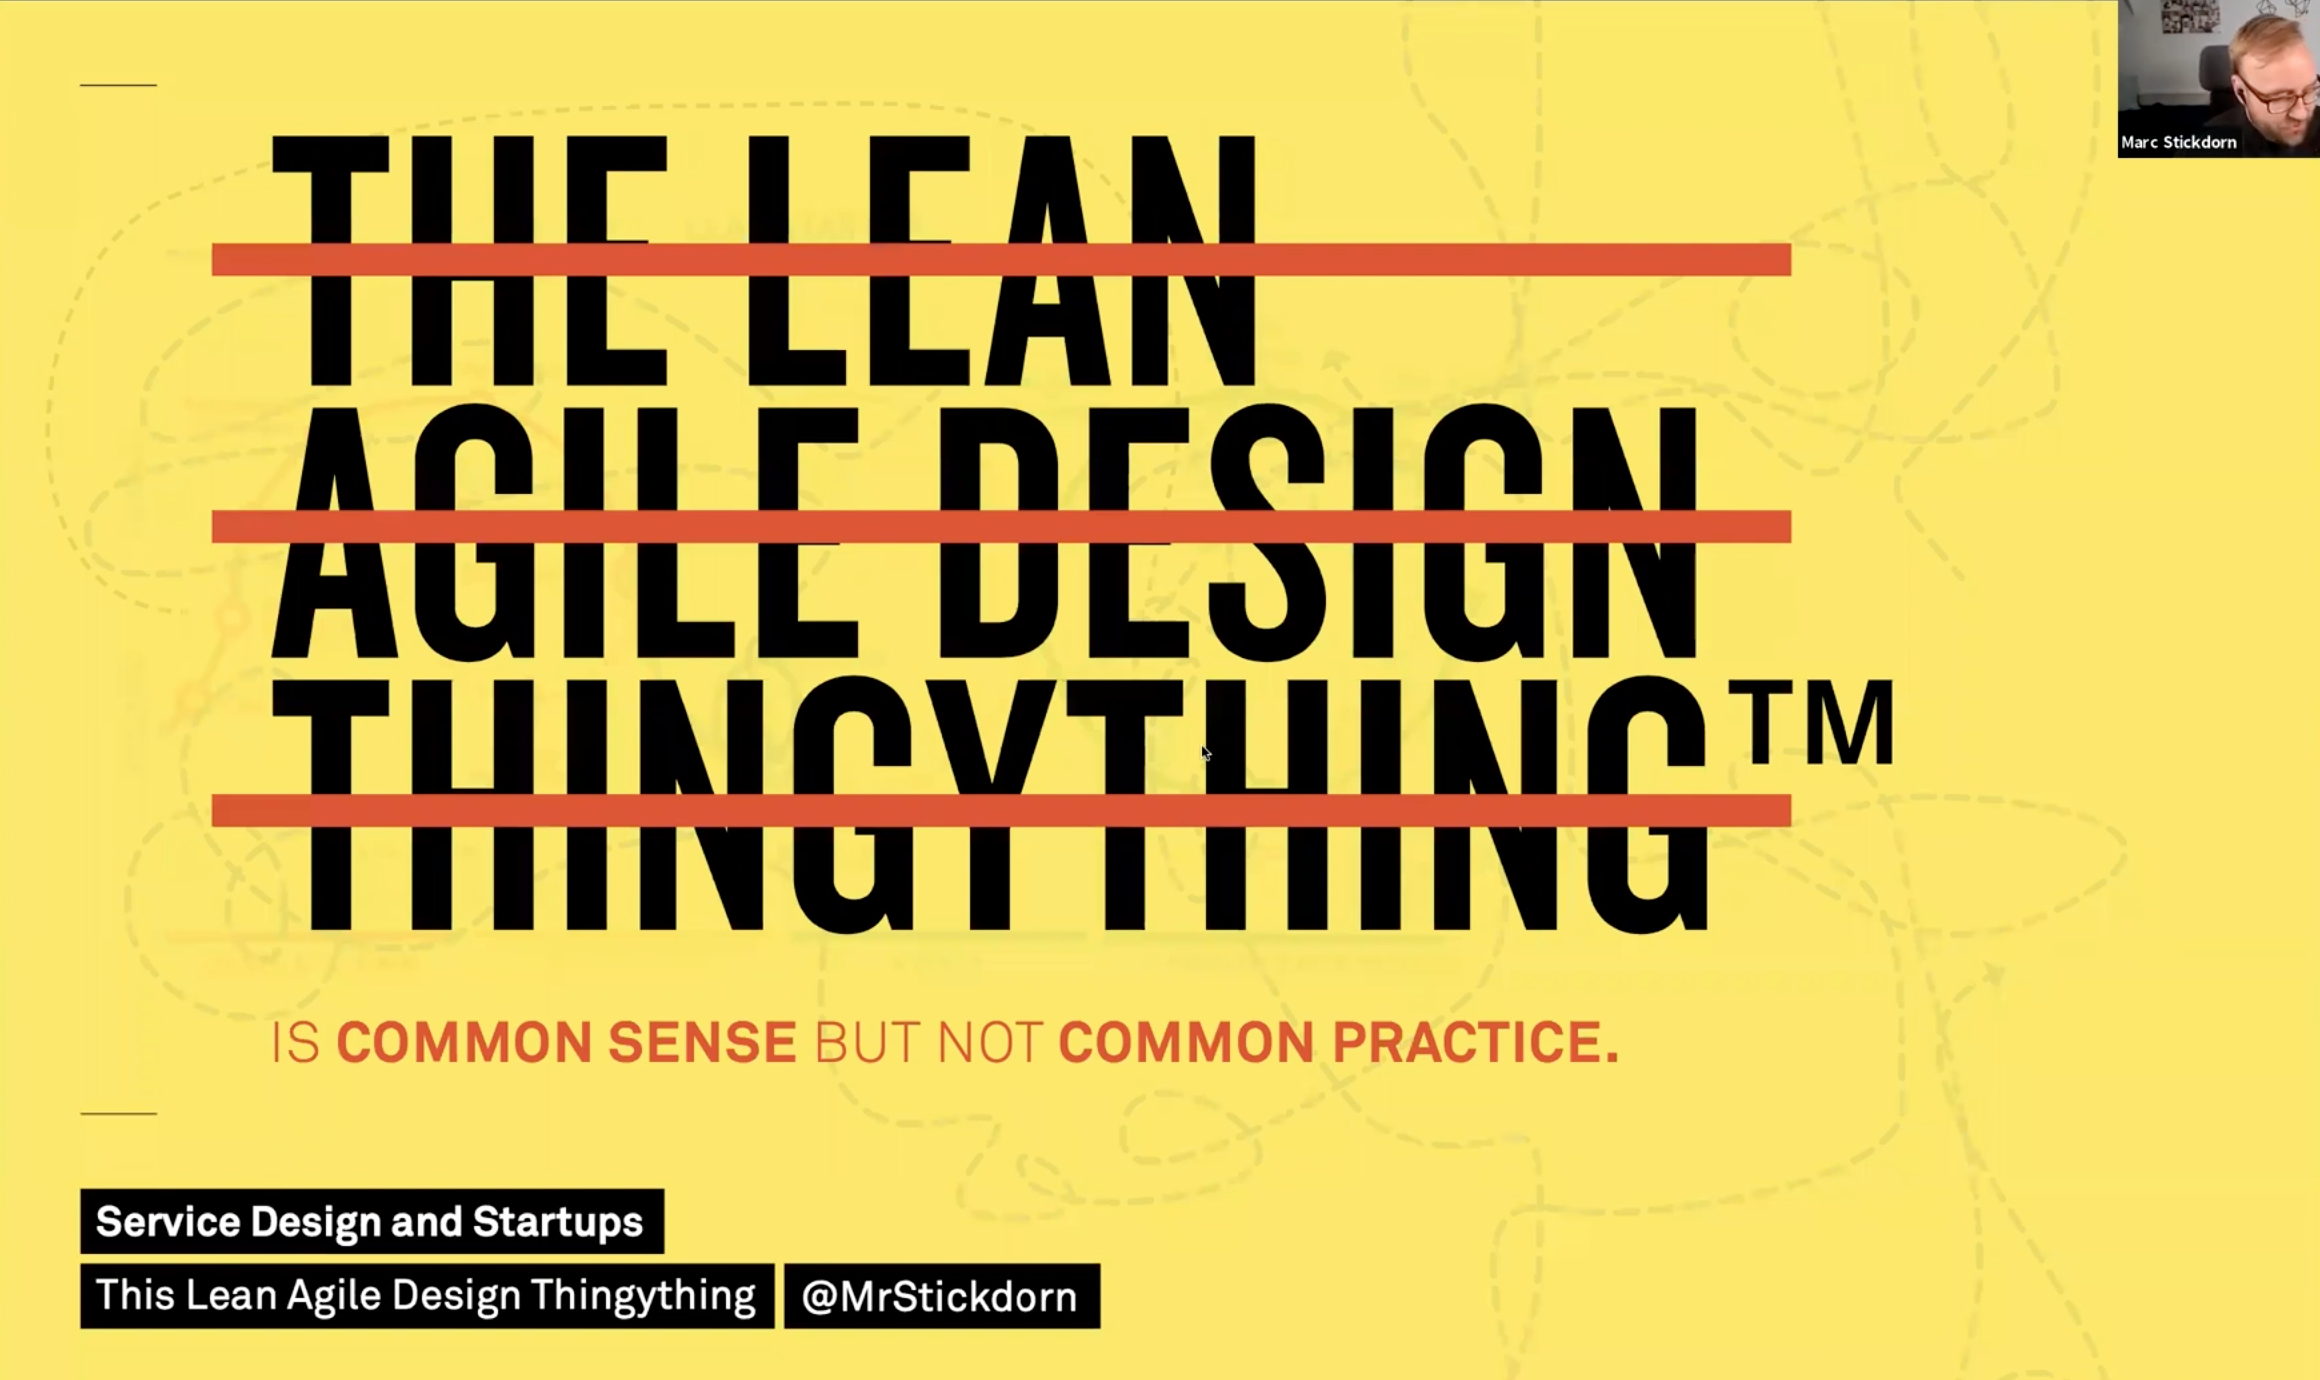 What we do is often common sense. The challenge is to make it common practice.